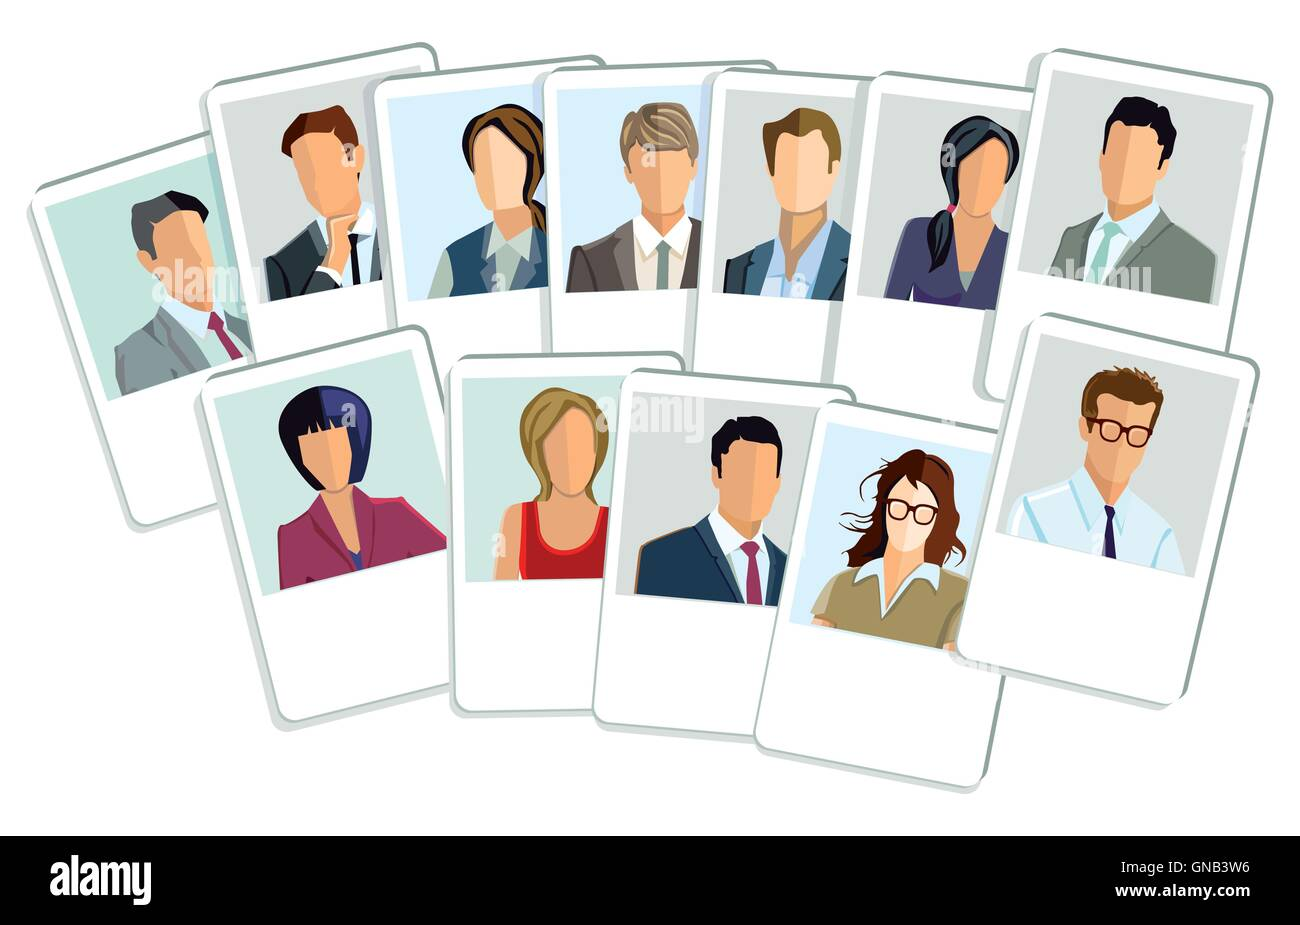 Businessmen and businesswomen application - Stock Image